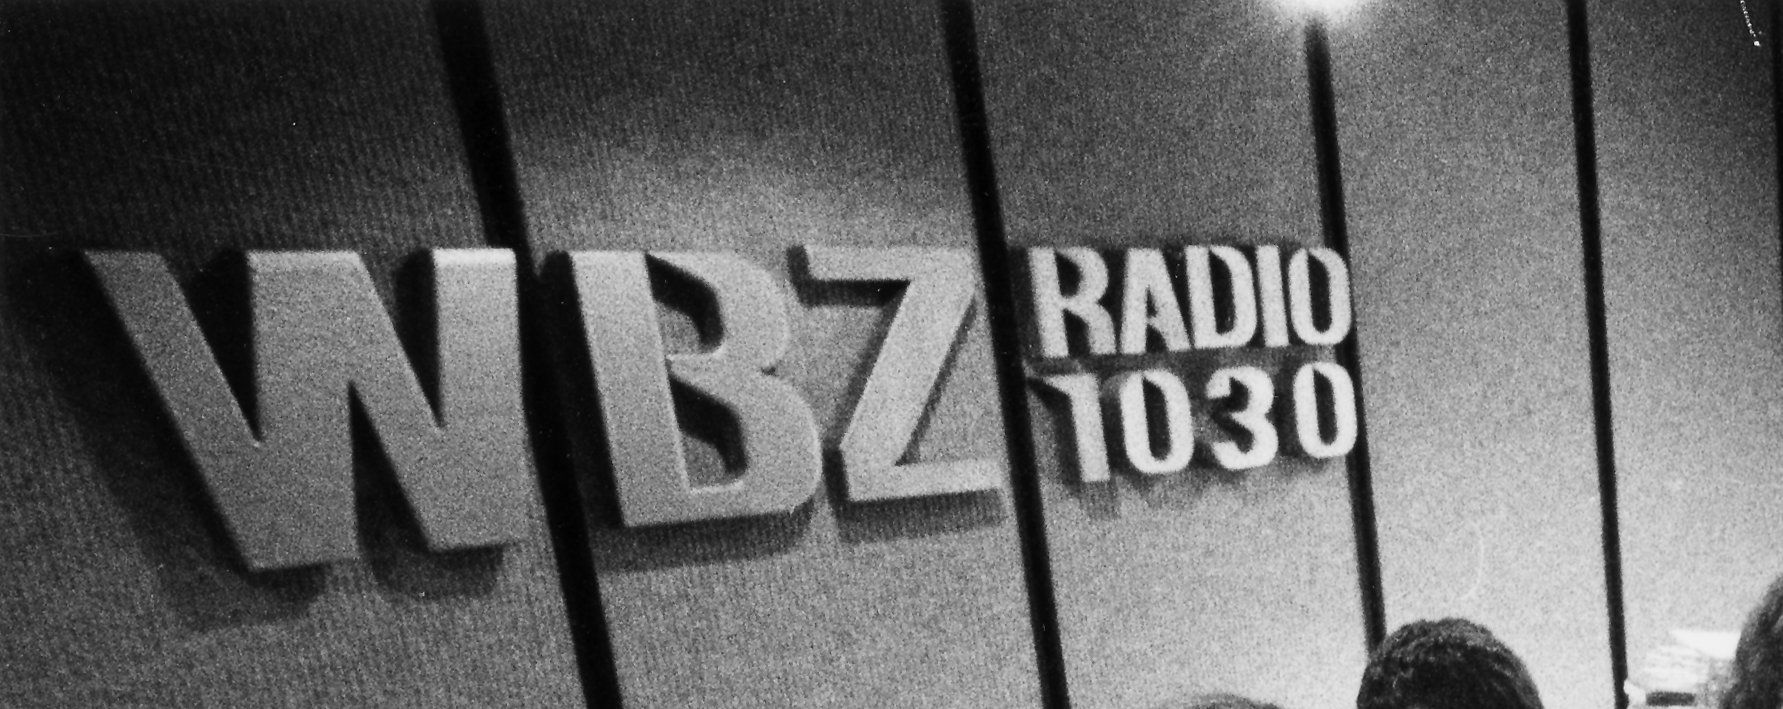 Radio network that's $20 billion in debt files for